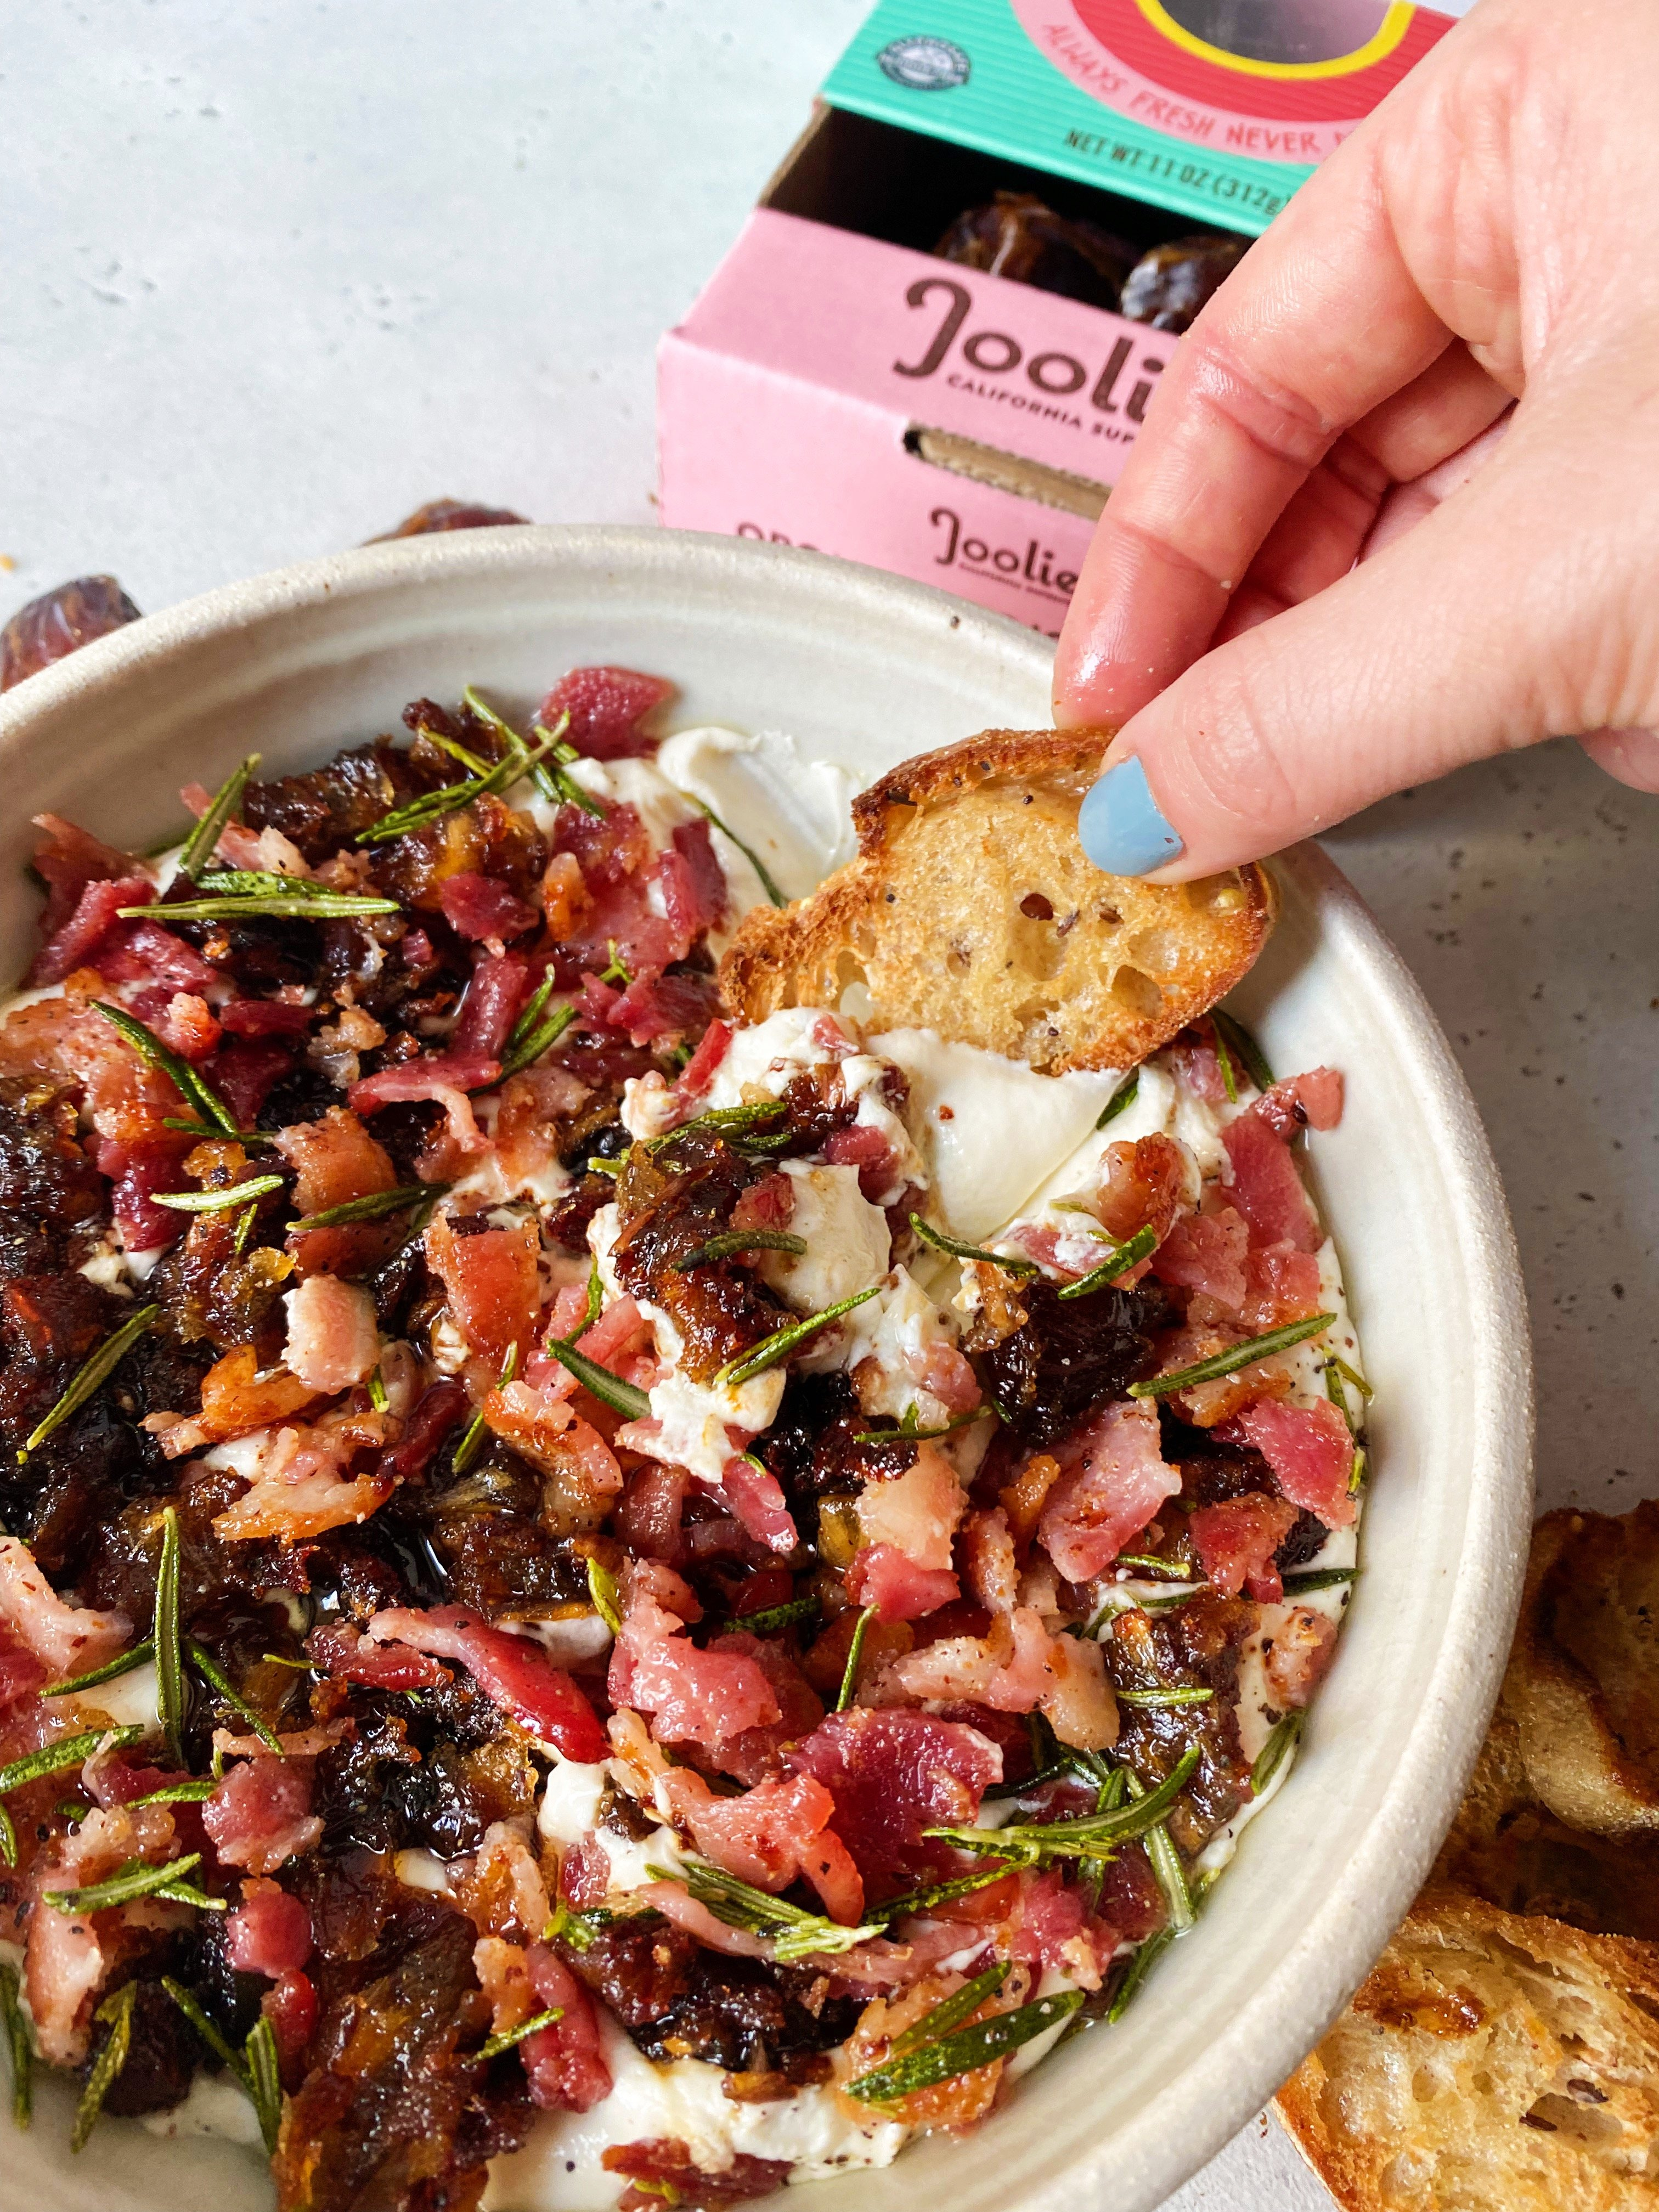 Whipped Goat Cheese Dip with Bacon and Dates